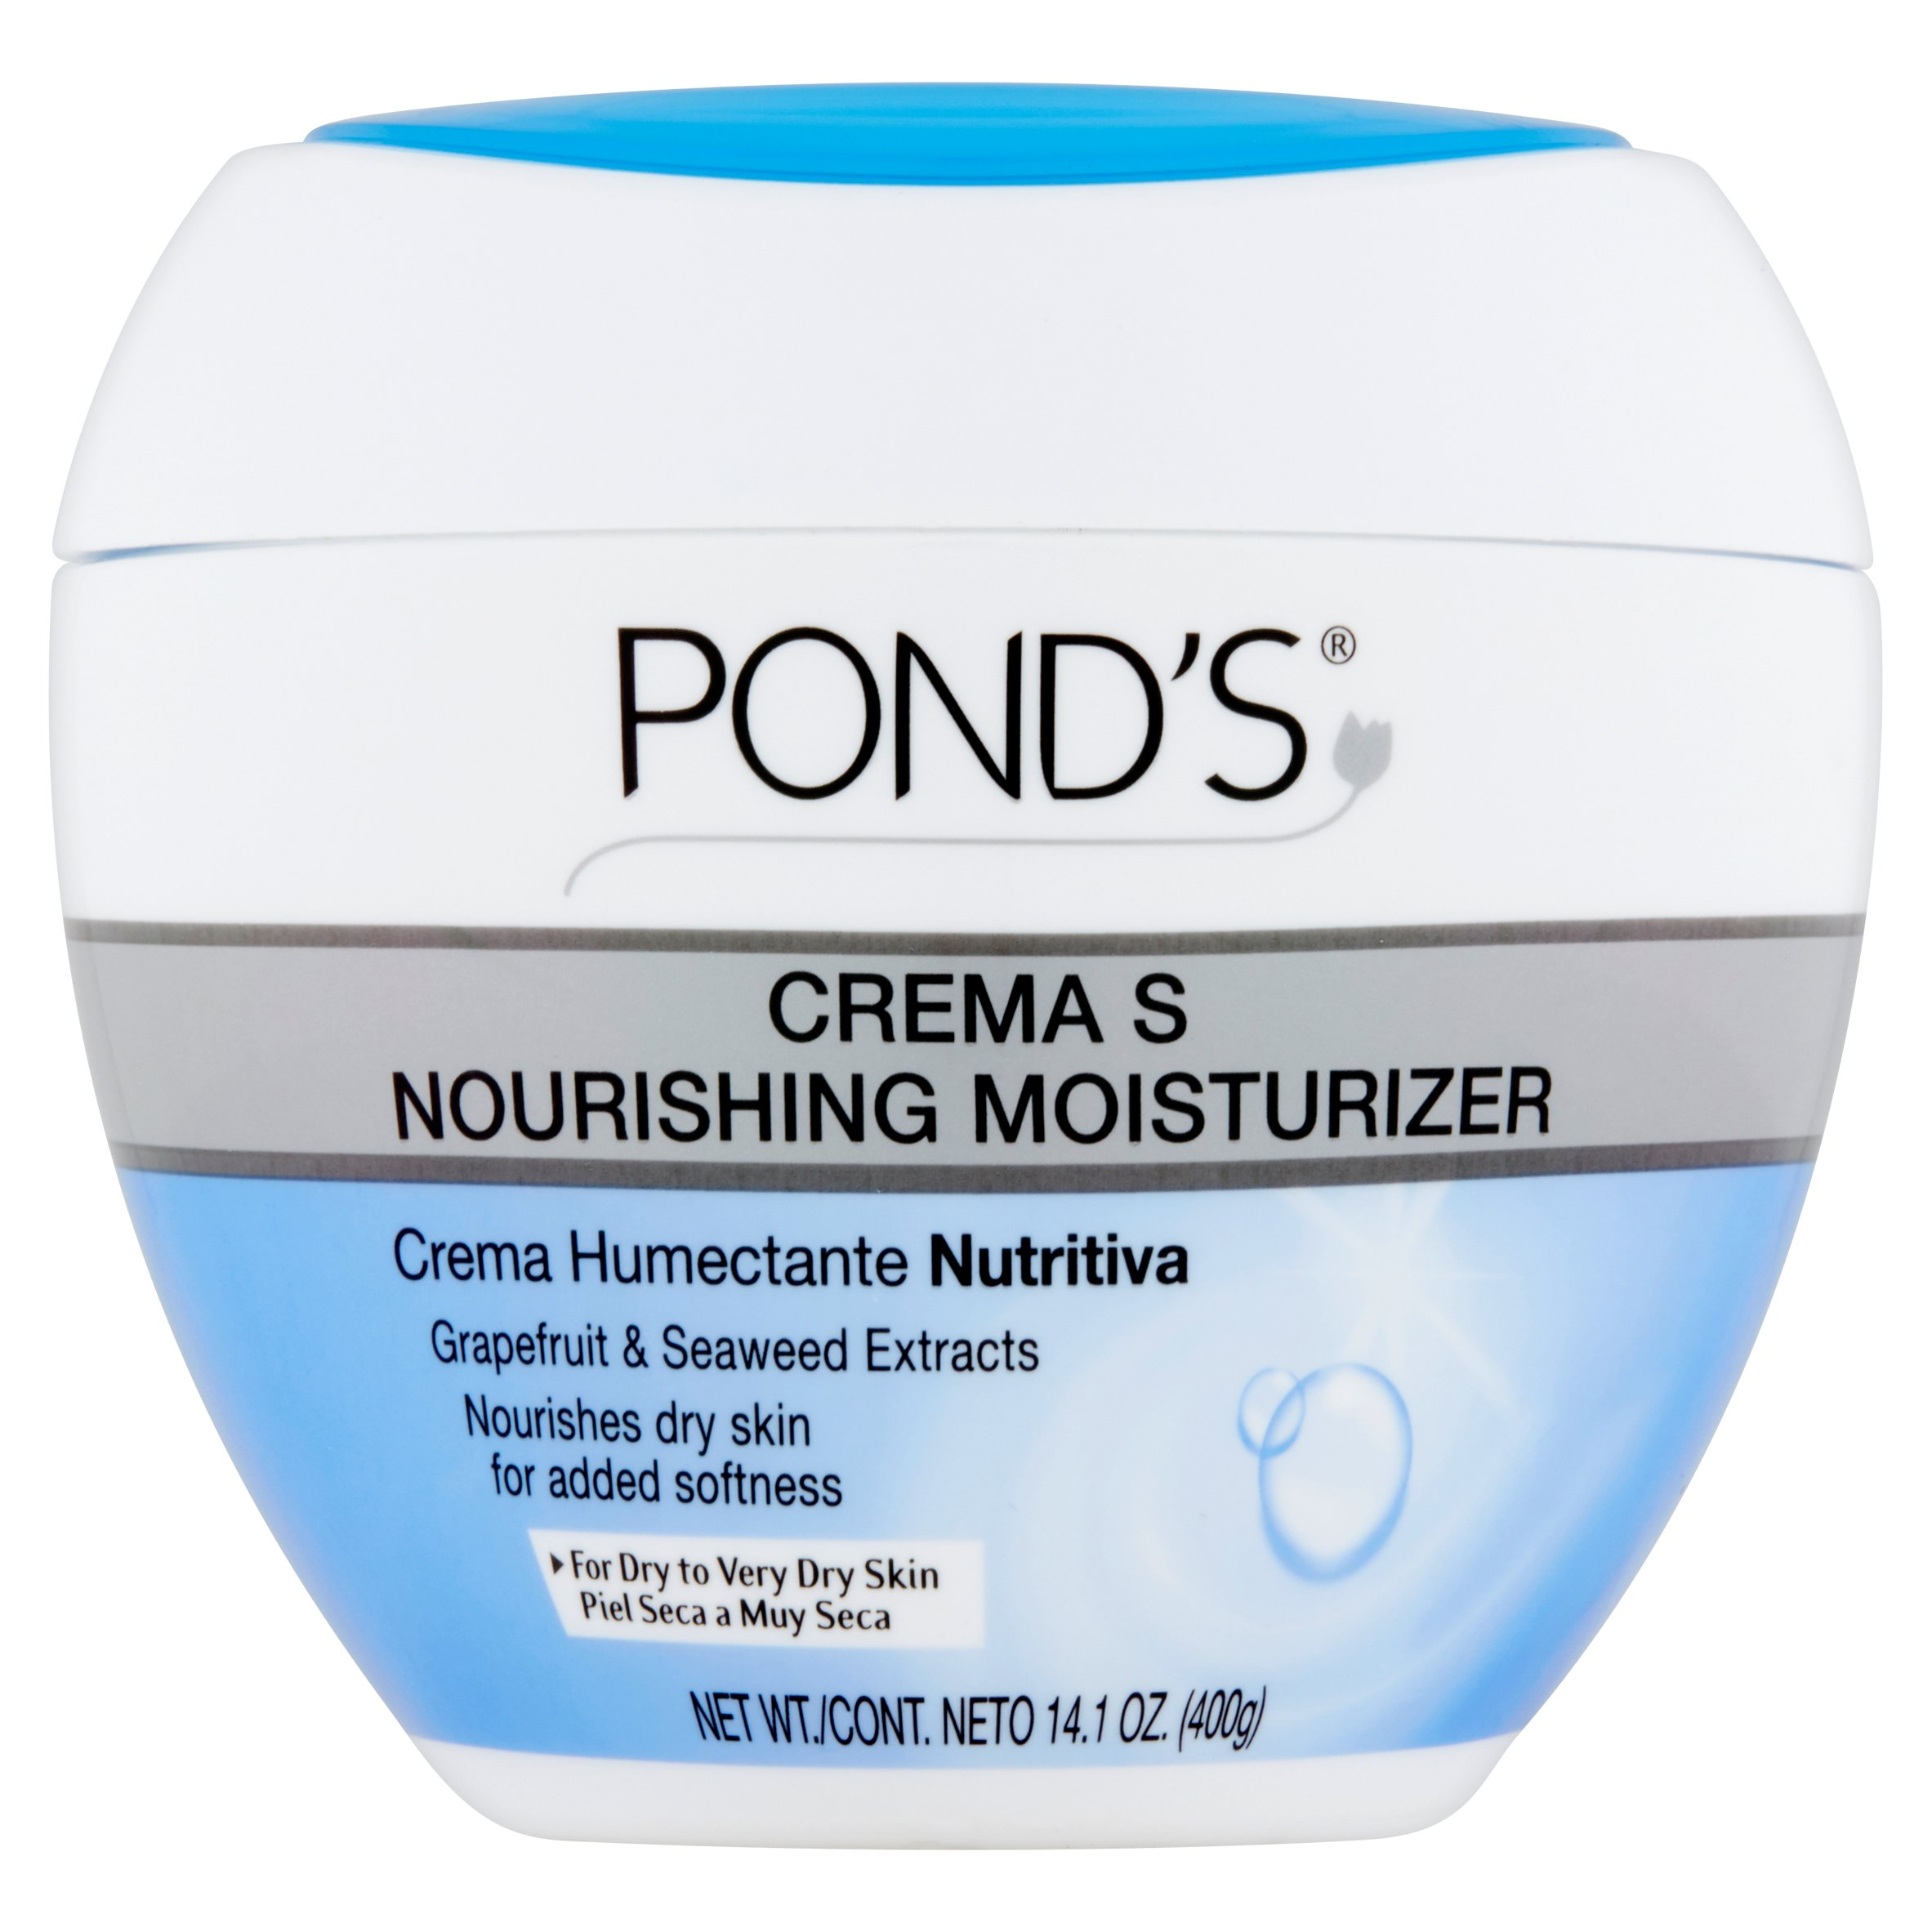 Pond's Crema S Nourishing Moisturizing Cream 14.1 oz by Pond Equipment